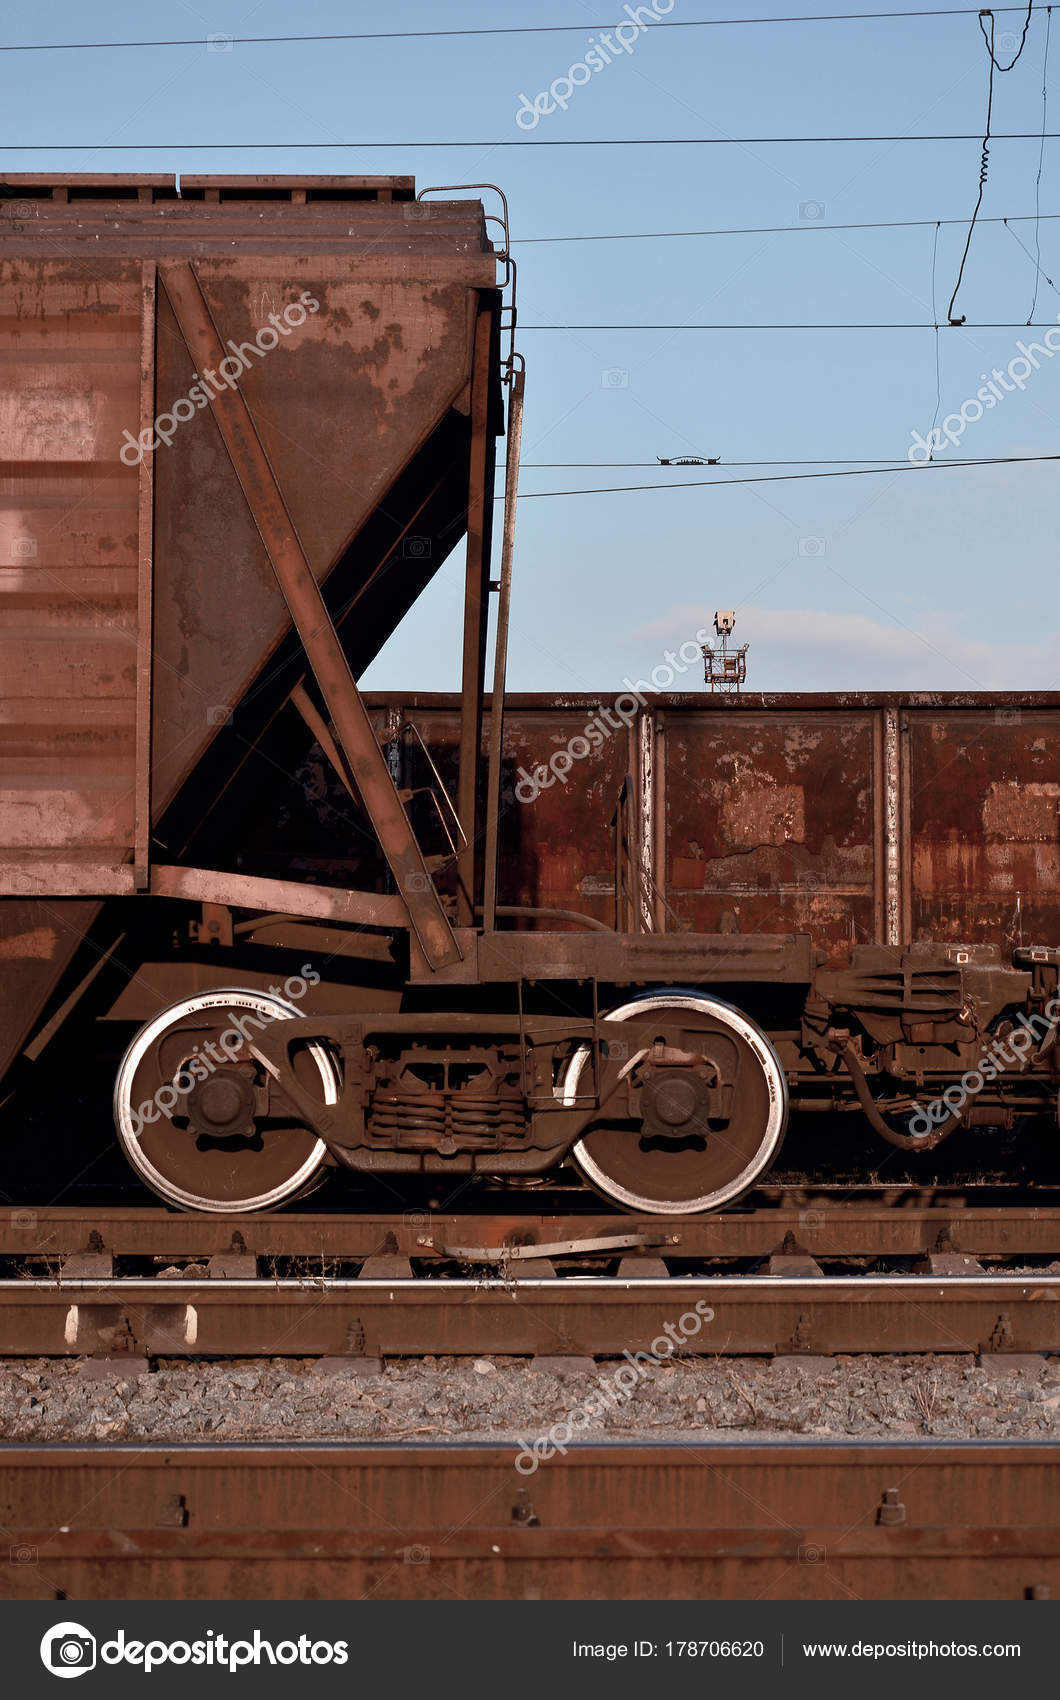 Detailed Photo Railway Freight Car Fragment Component Parts